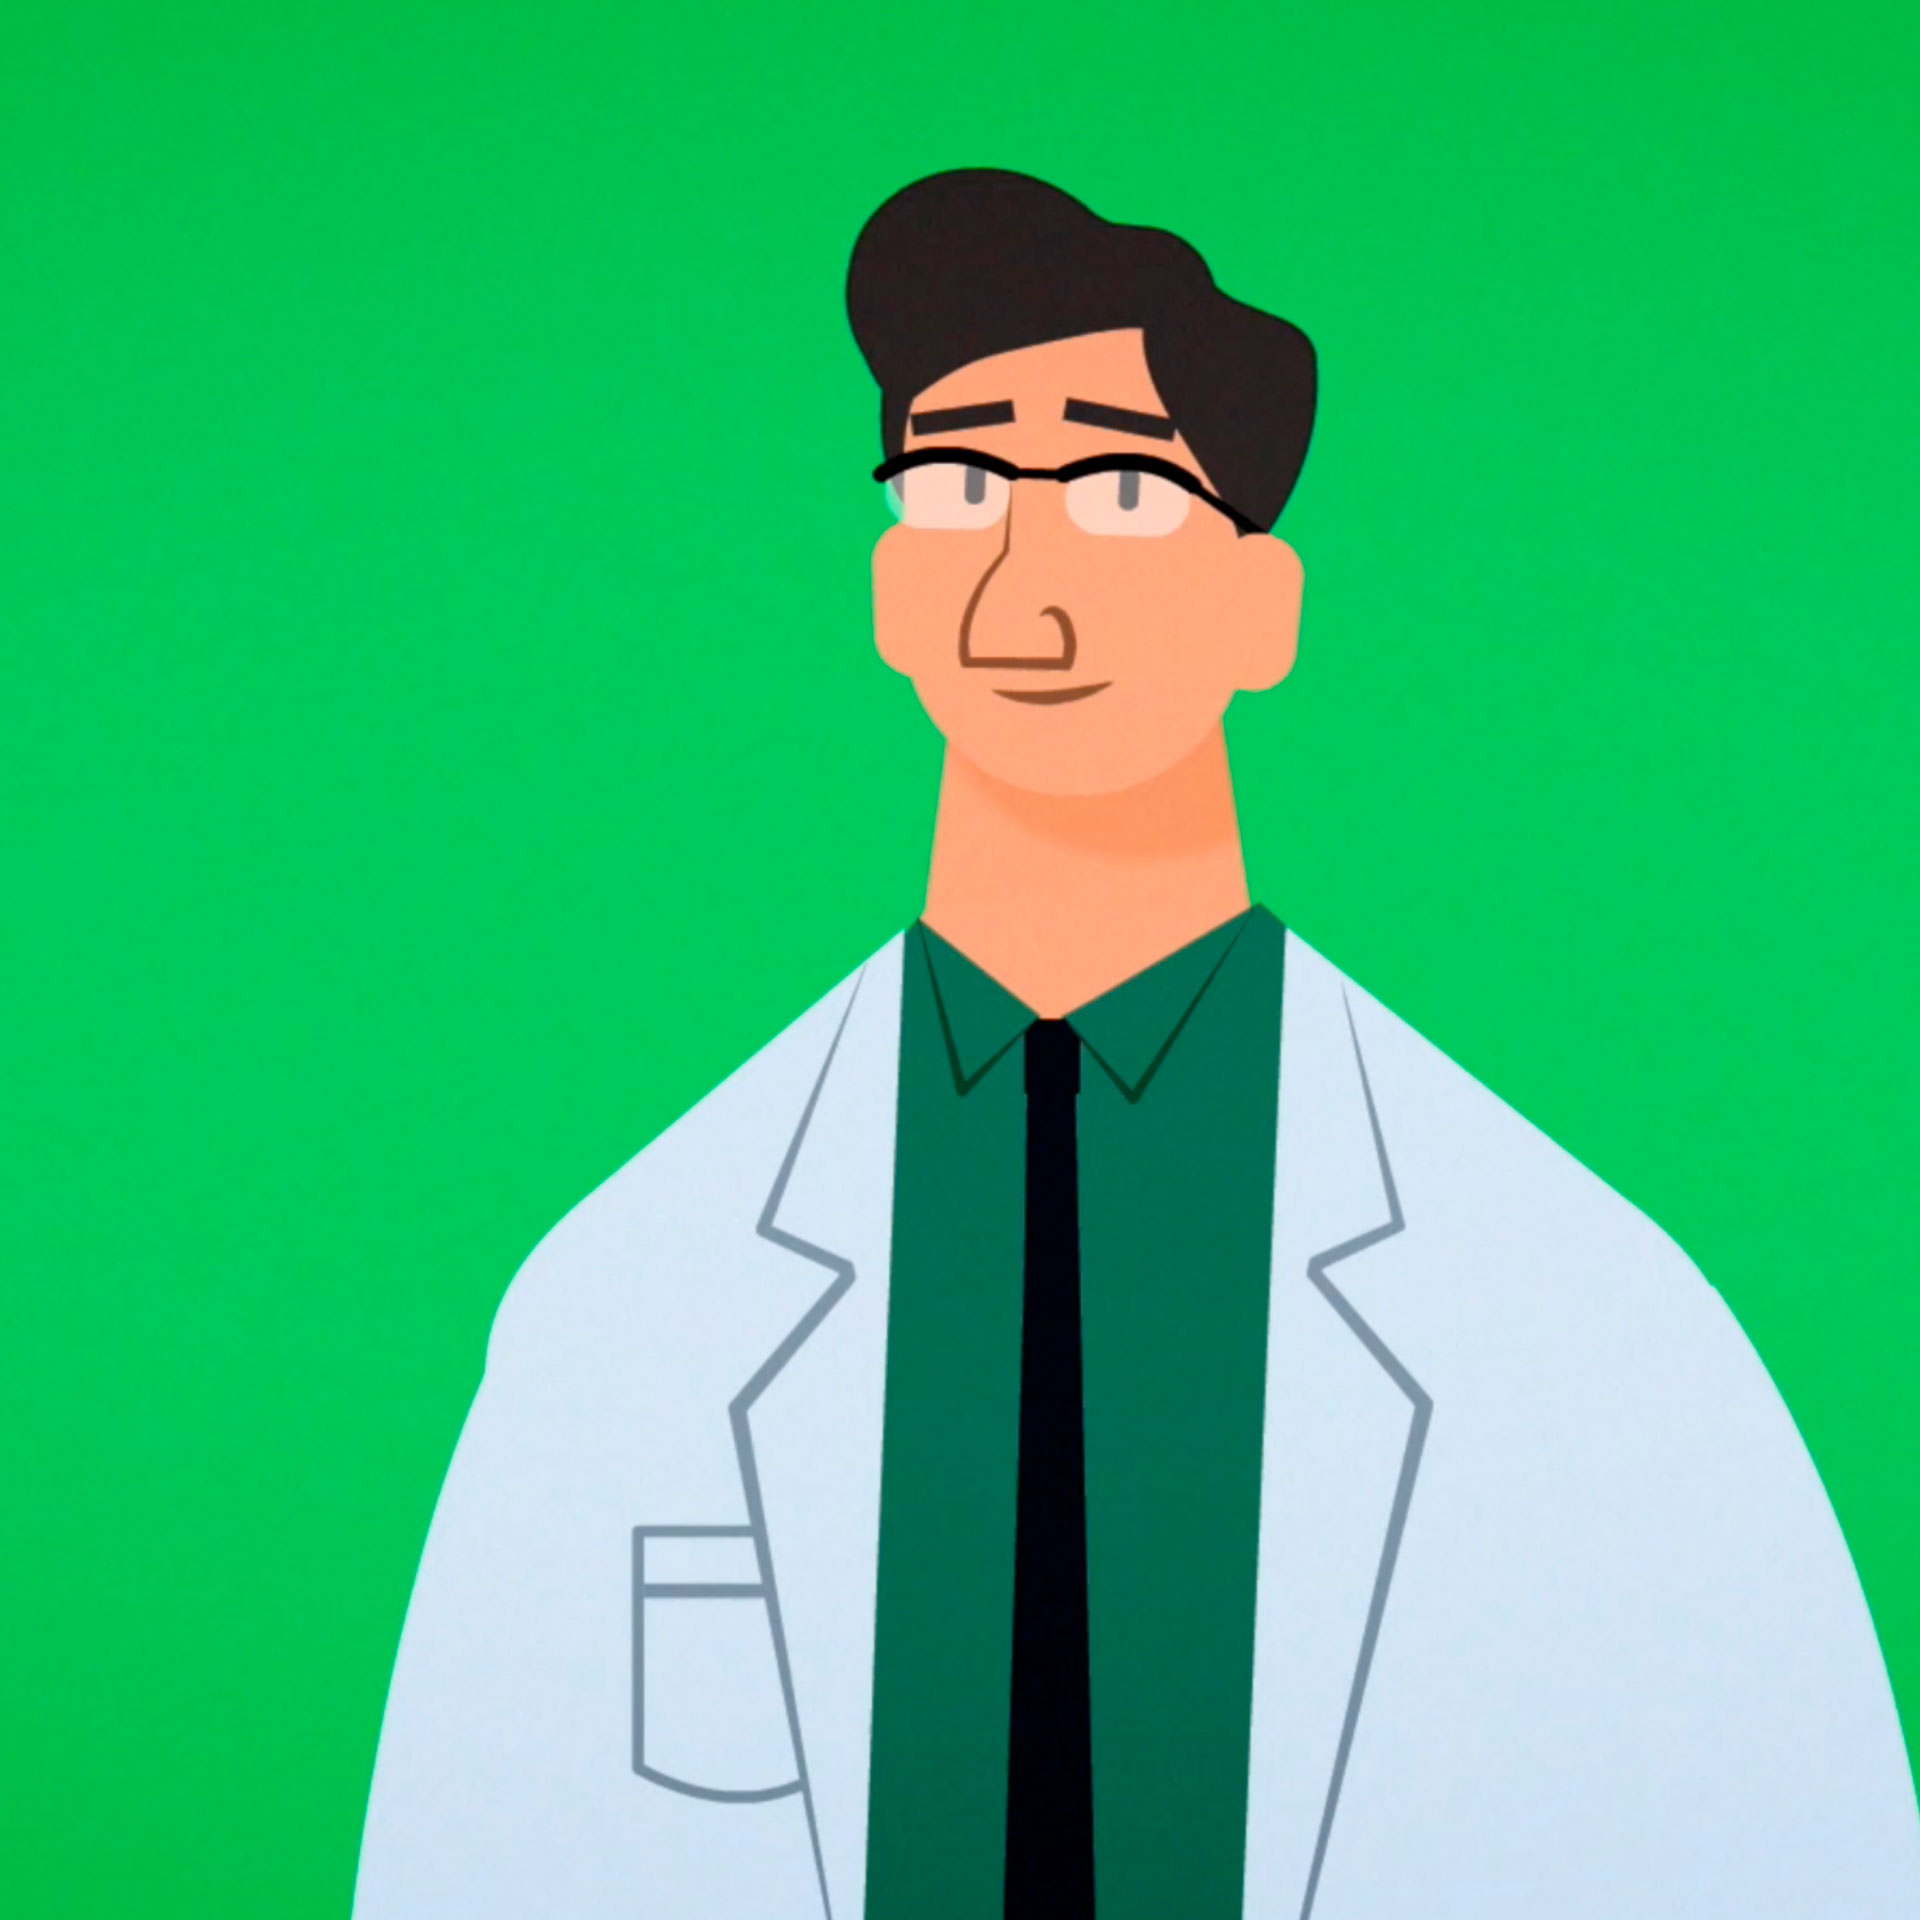 An illustration of a doctor